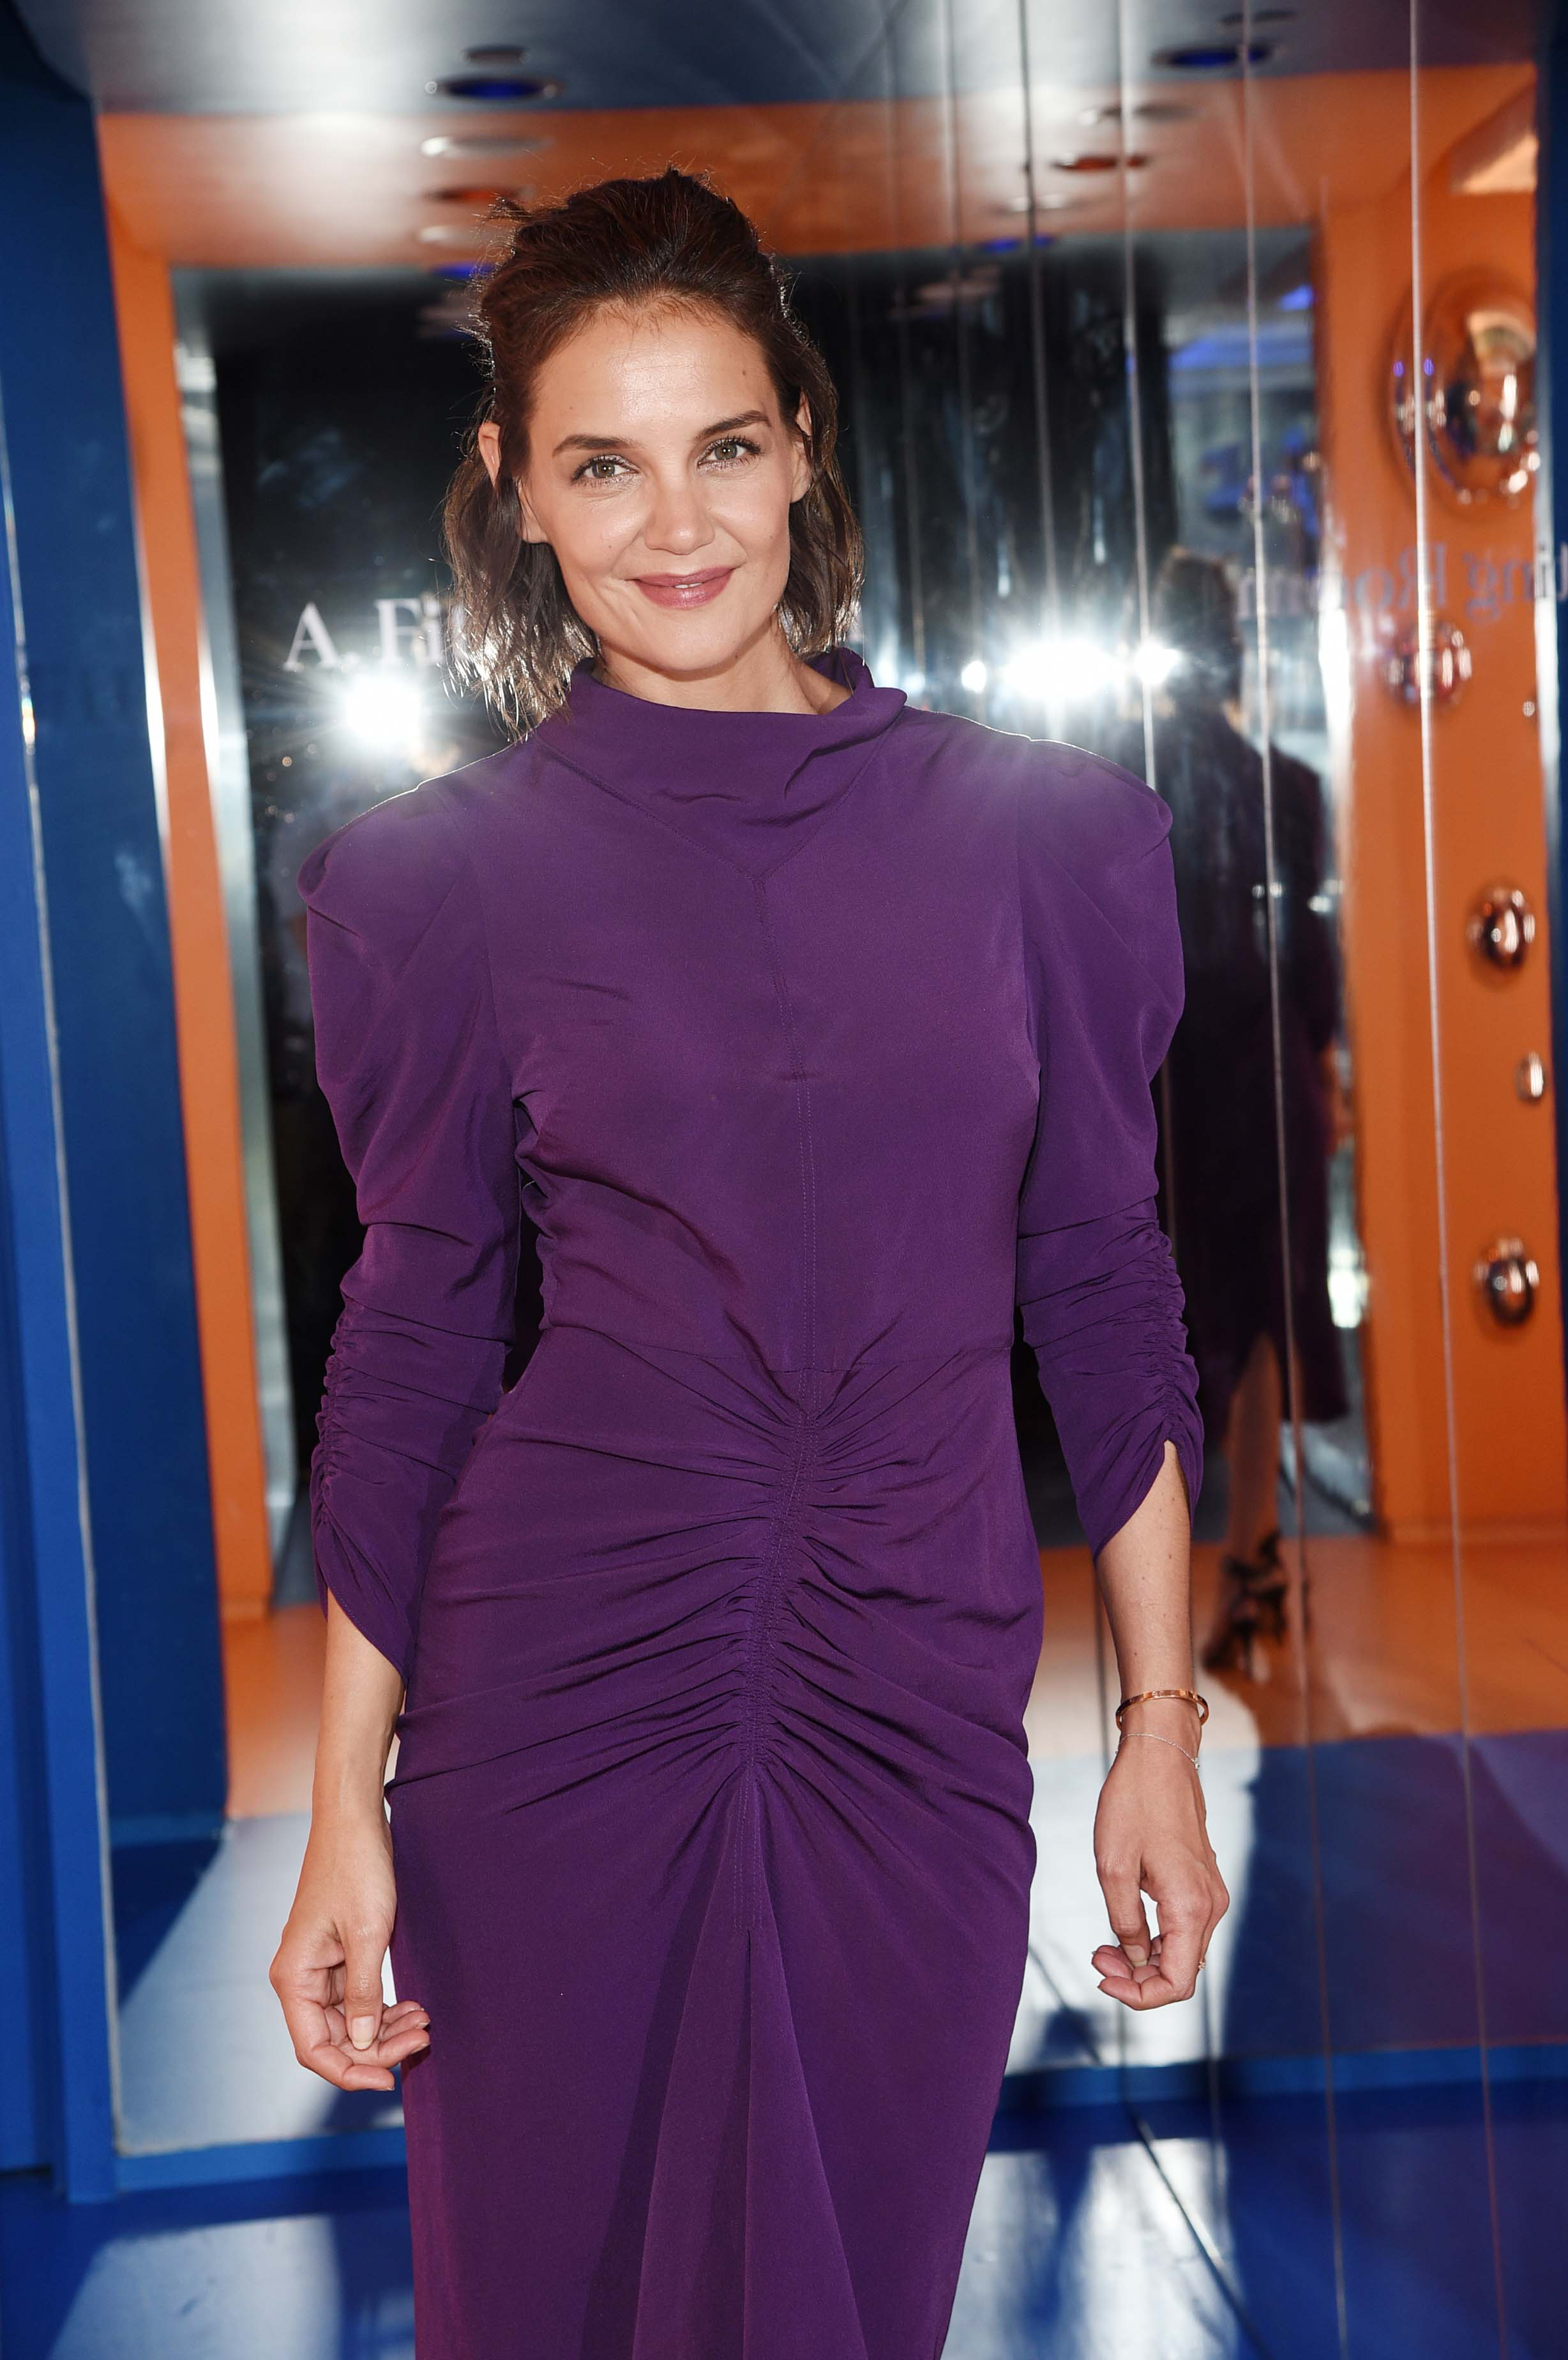 katie-holmes-a-human-experience-exhibit-in-nyc-9418-3